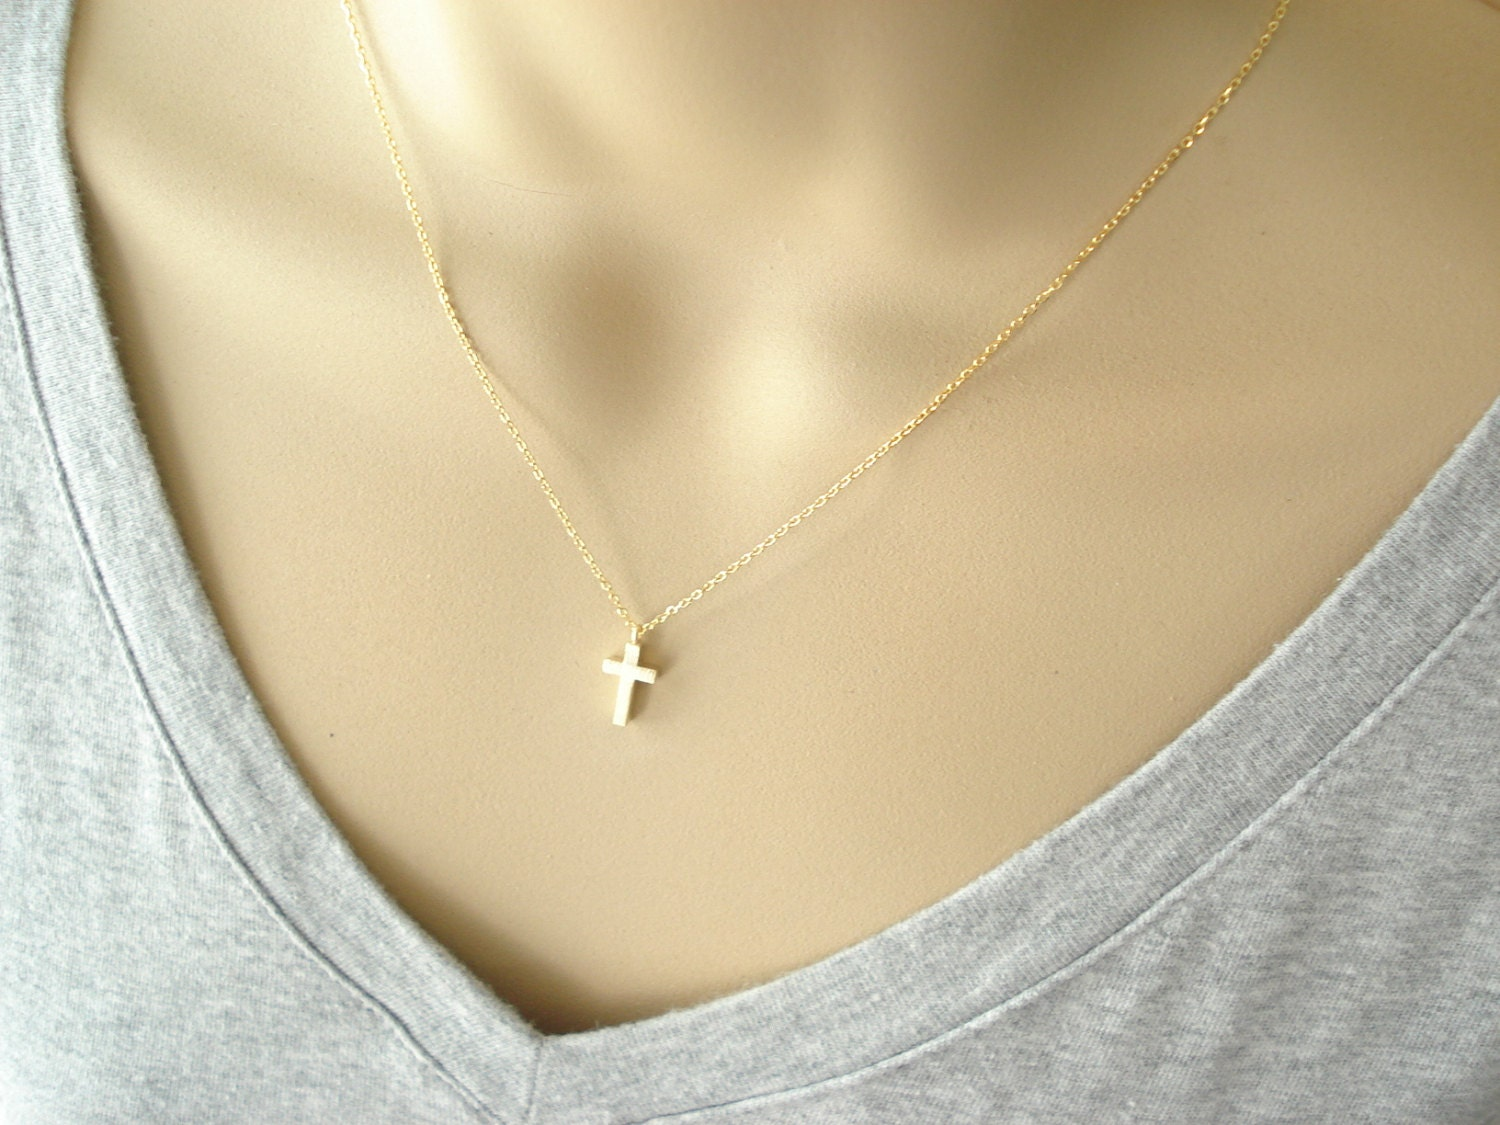 Tiny gold cross necklacesimple everyday wear bridal